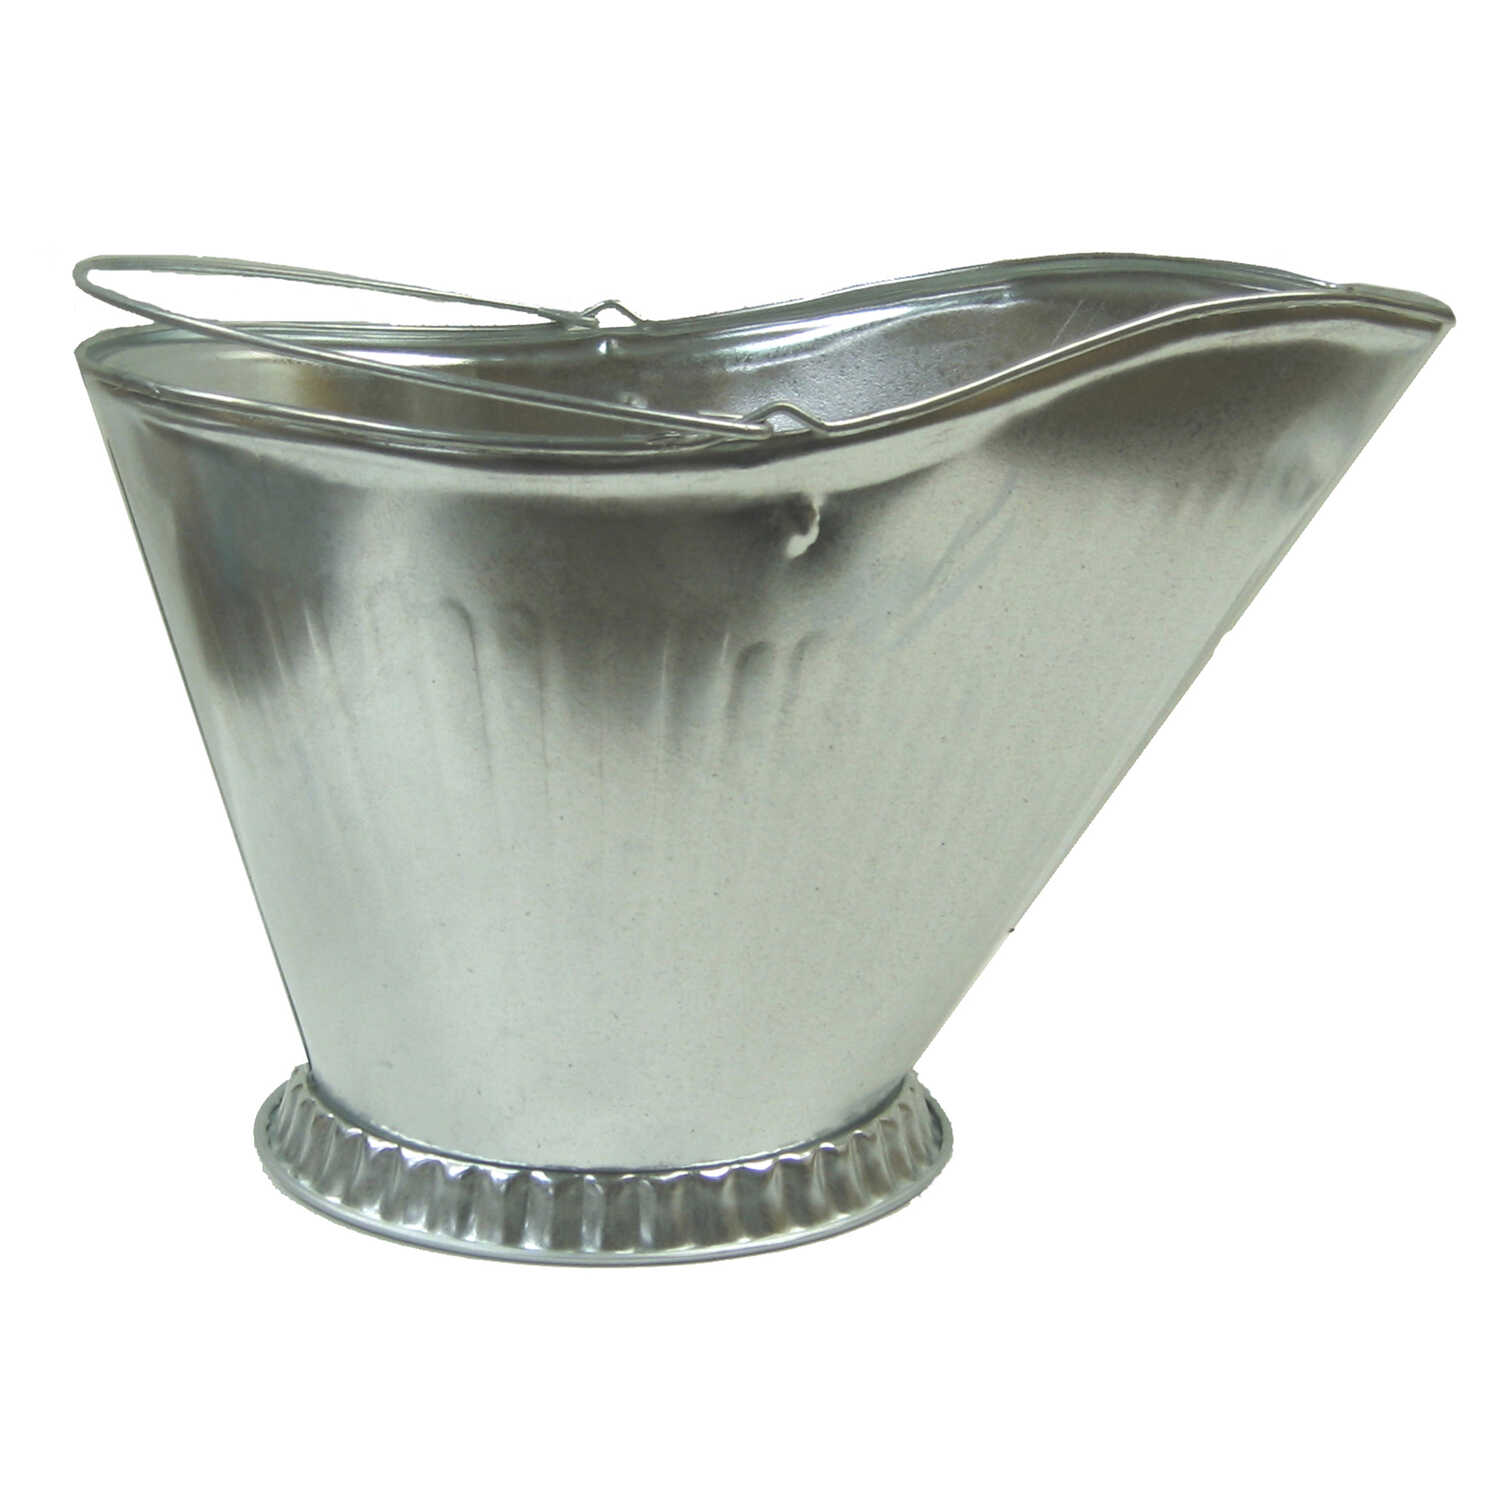 Lasting Traditions  Silver  Galvanized  Steel  Coal Hod